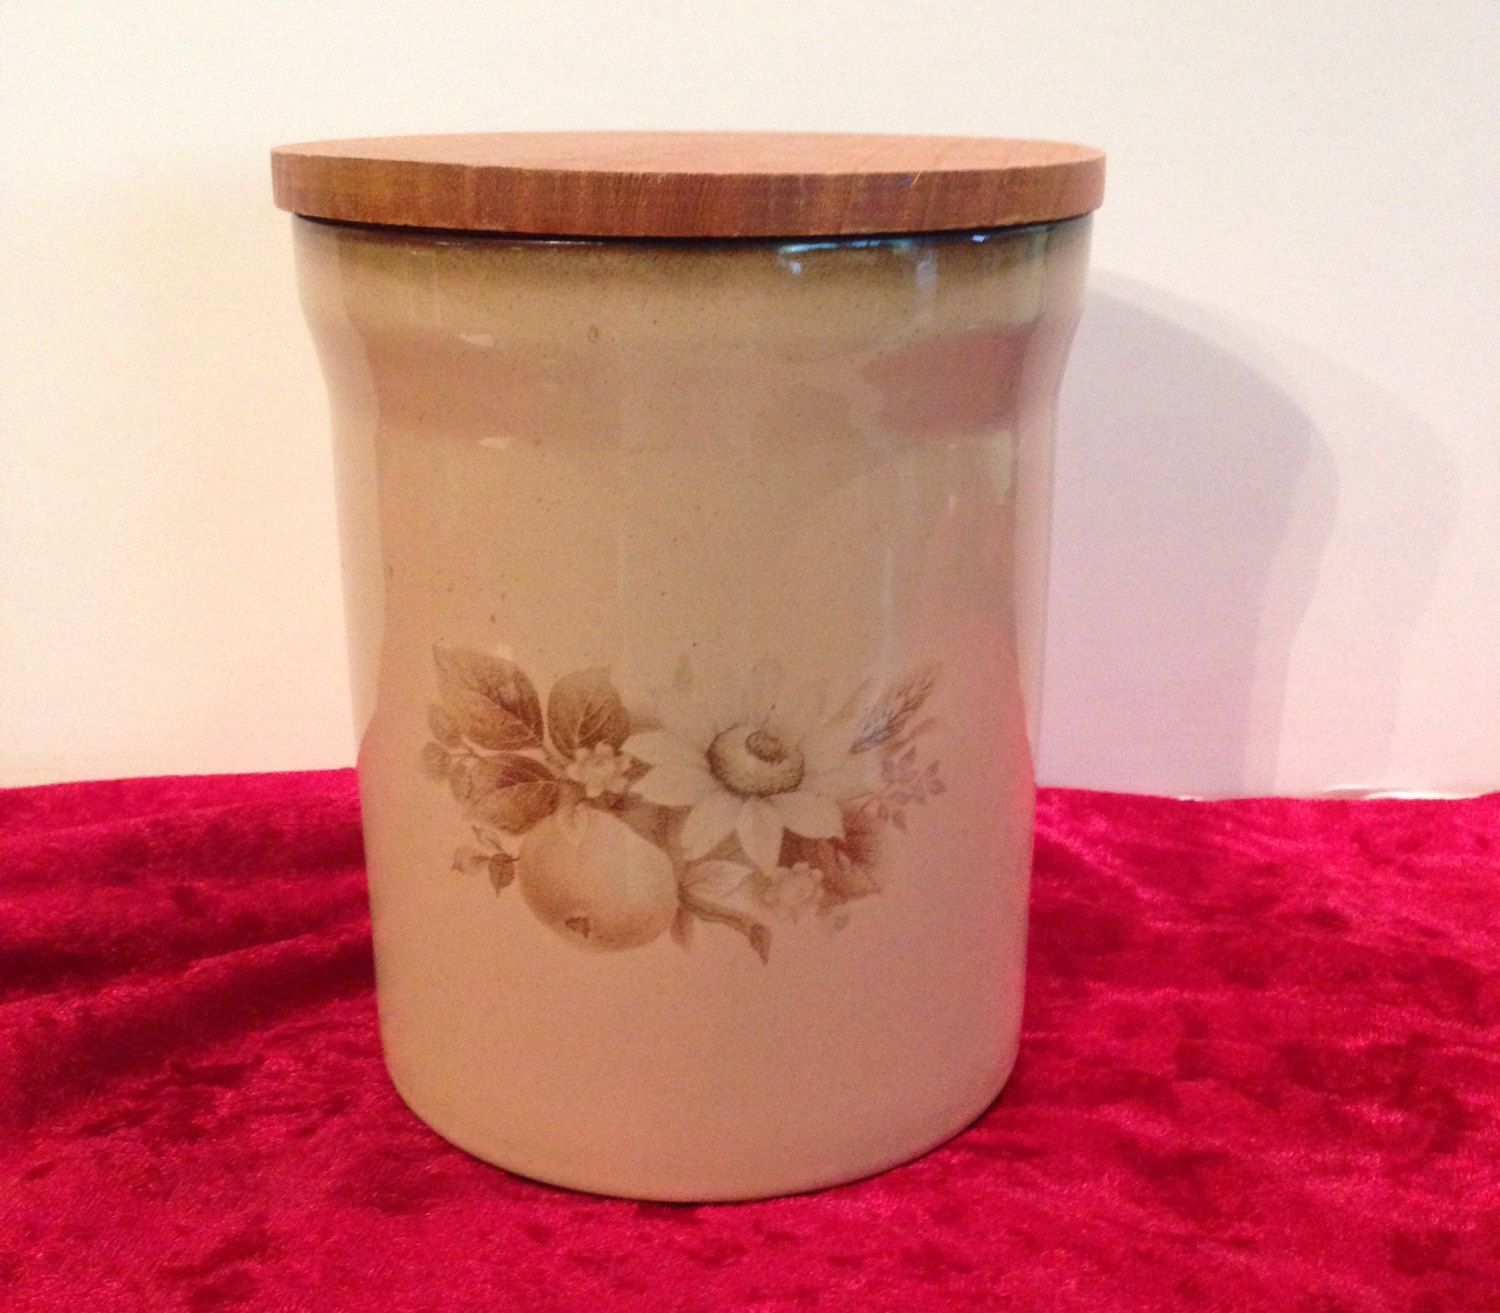 Denby Fine Stoneware Handcrafted Crock With Wooden Lid English Pottery Container England Housewares Decor Storage Jar